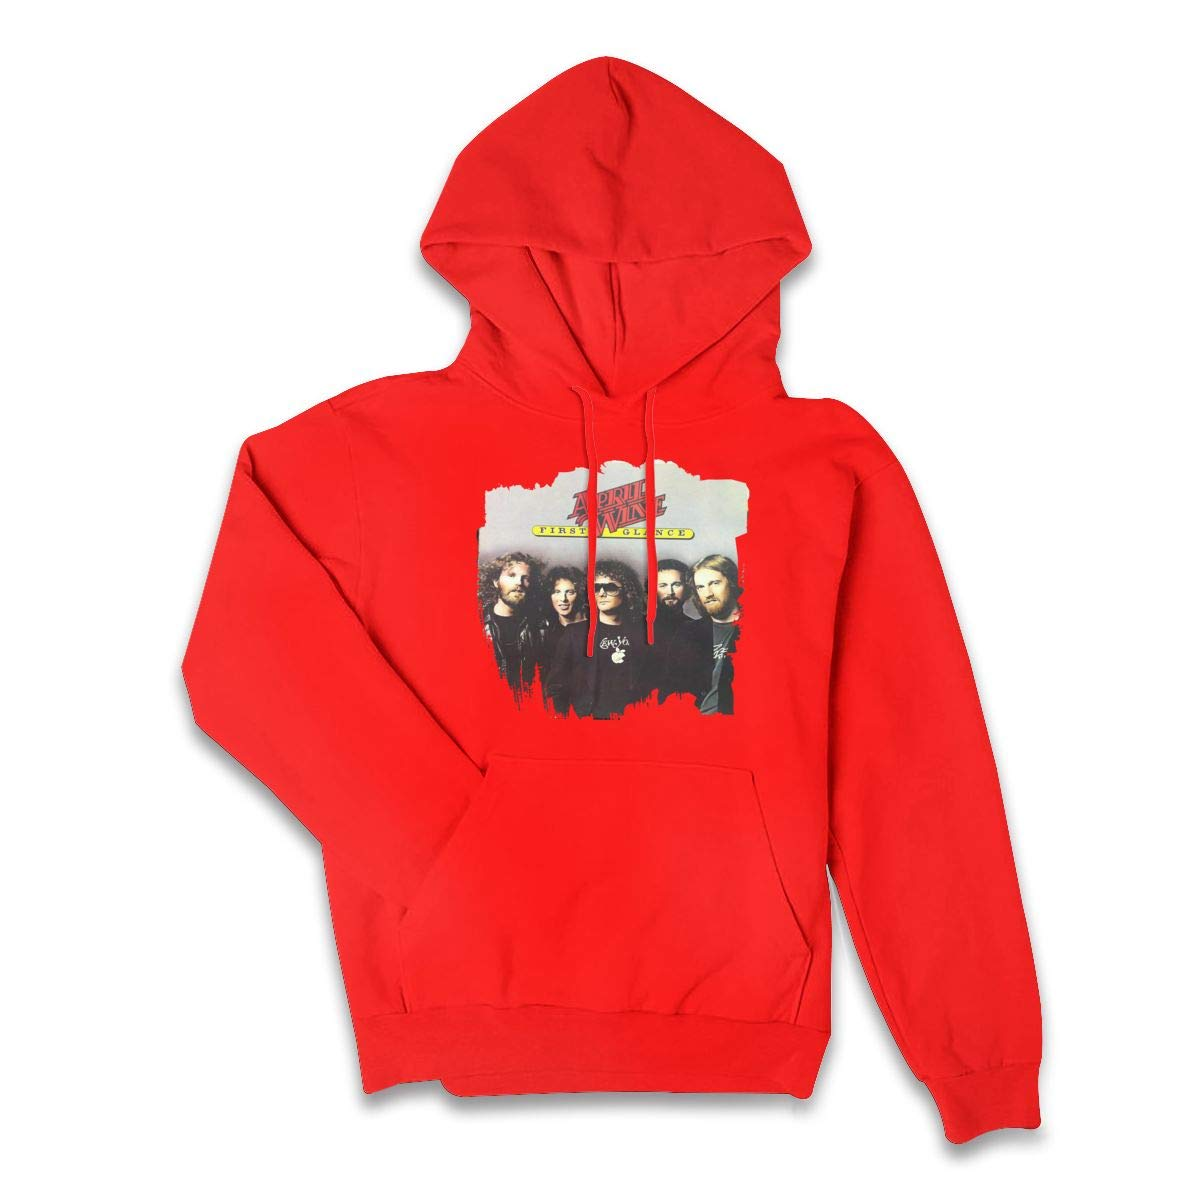 Erman S Color Name Retro April Wine Music Band Pullover Hooded Shirts With Pocket X